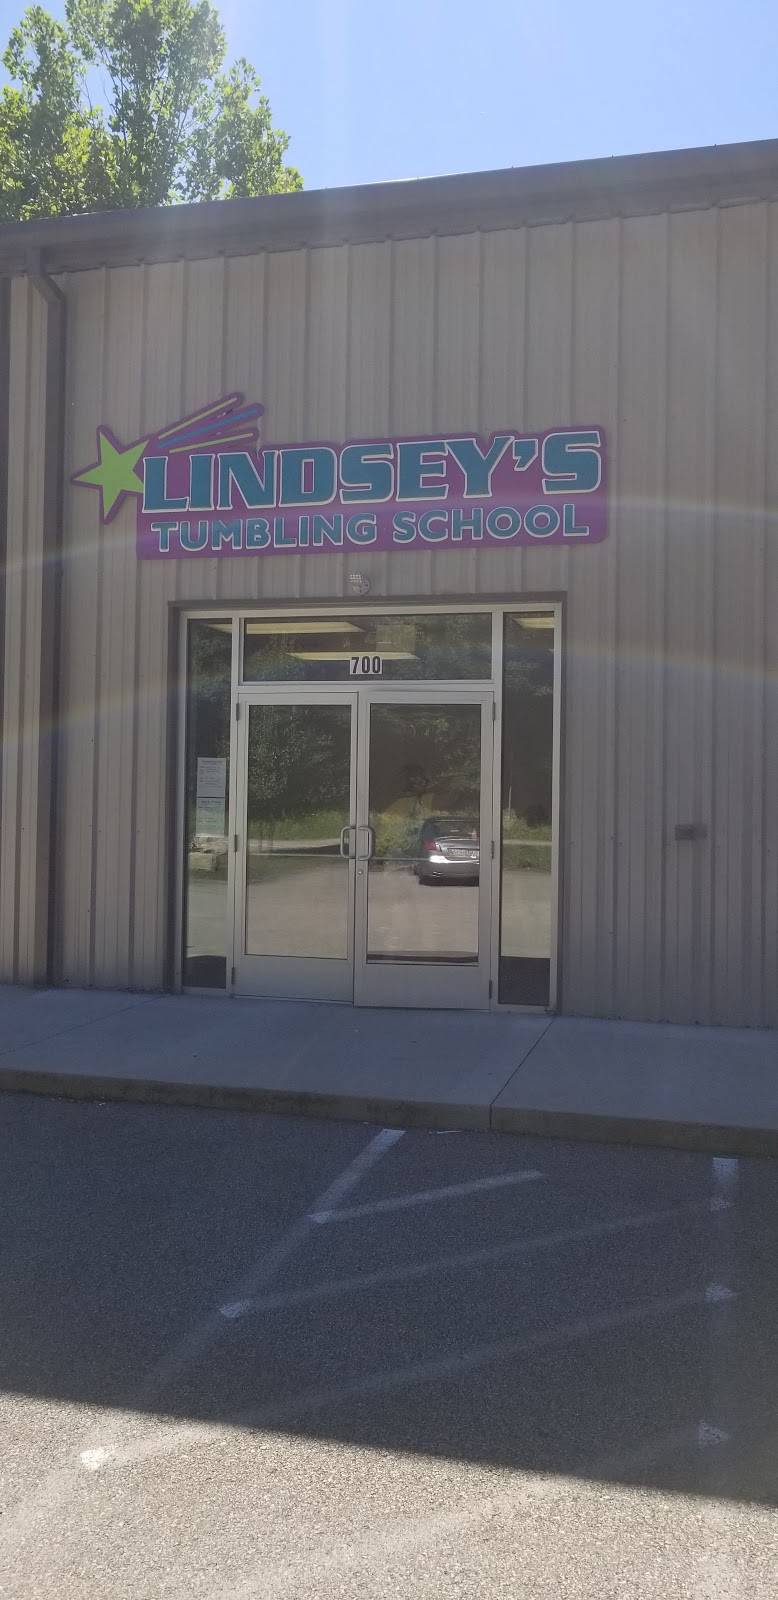 Lindseys Tumbling School - gym  | Photo 3 of 9 | Address: 700 Cochran Mill Rd, Clairton, PA 15025, USA | Phone: (412) 386-8065